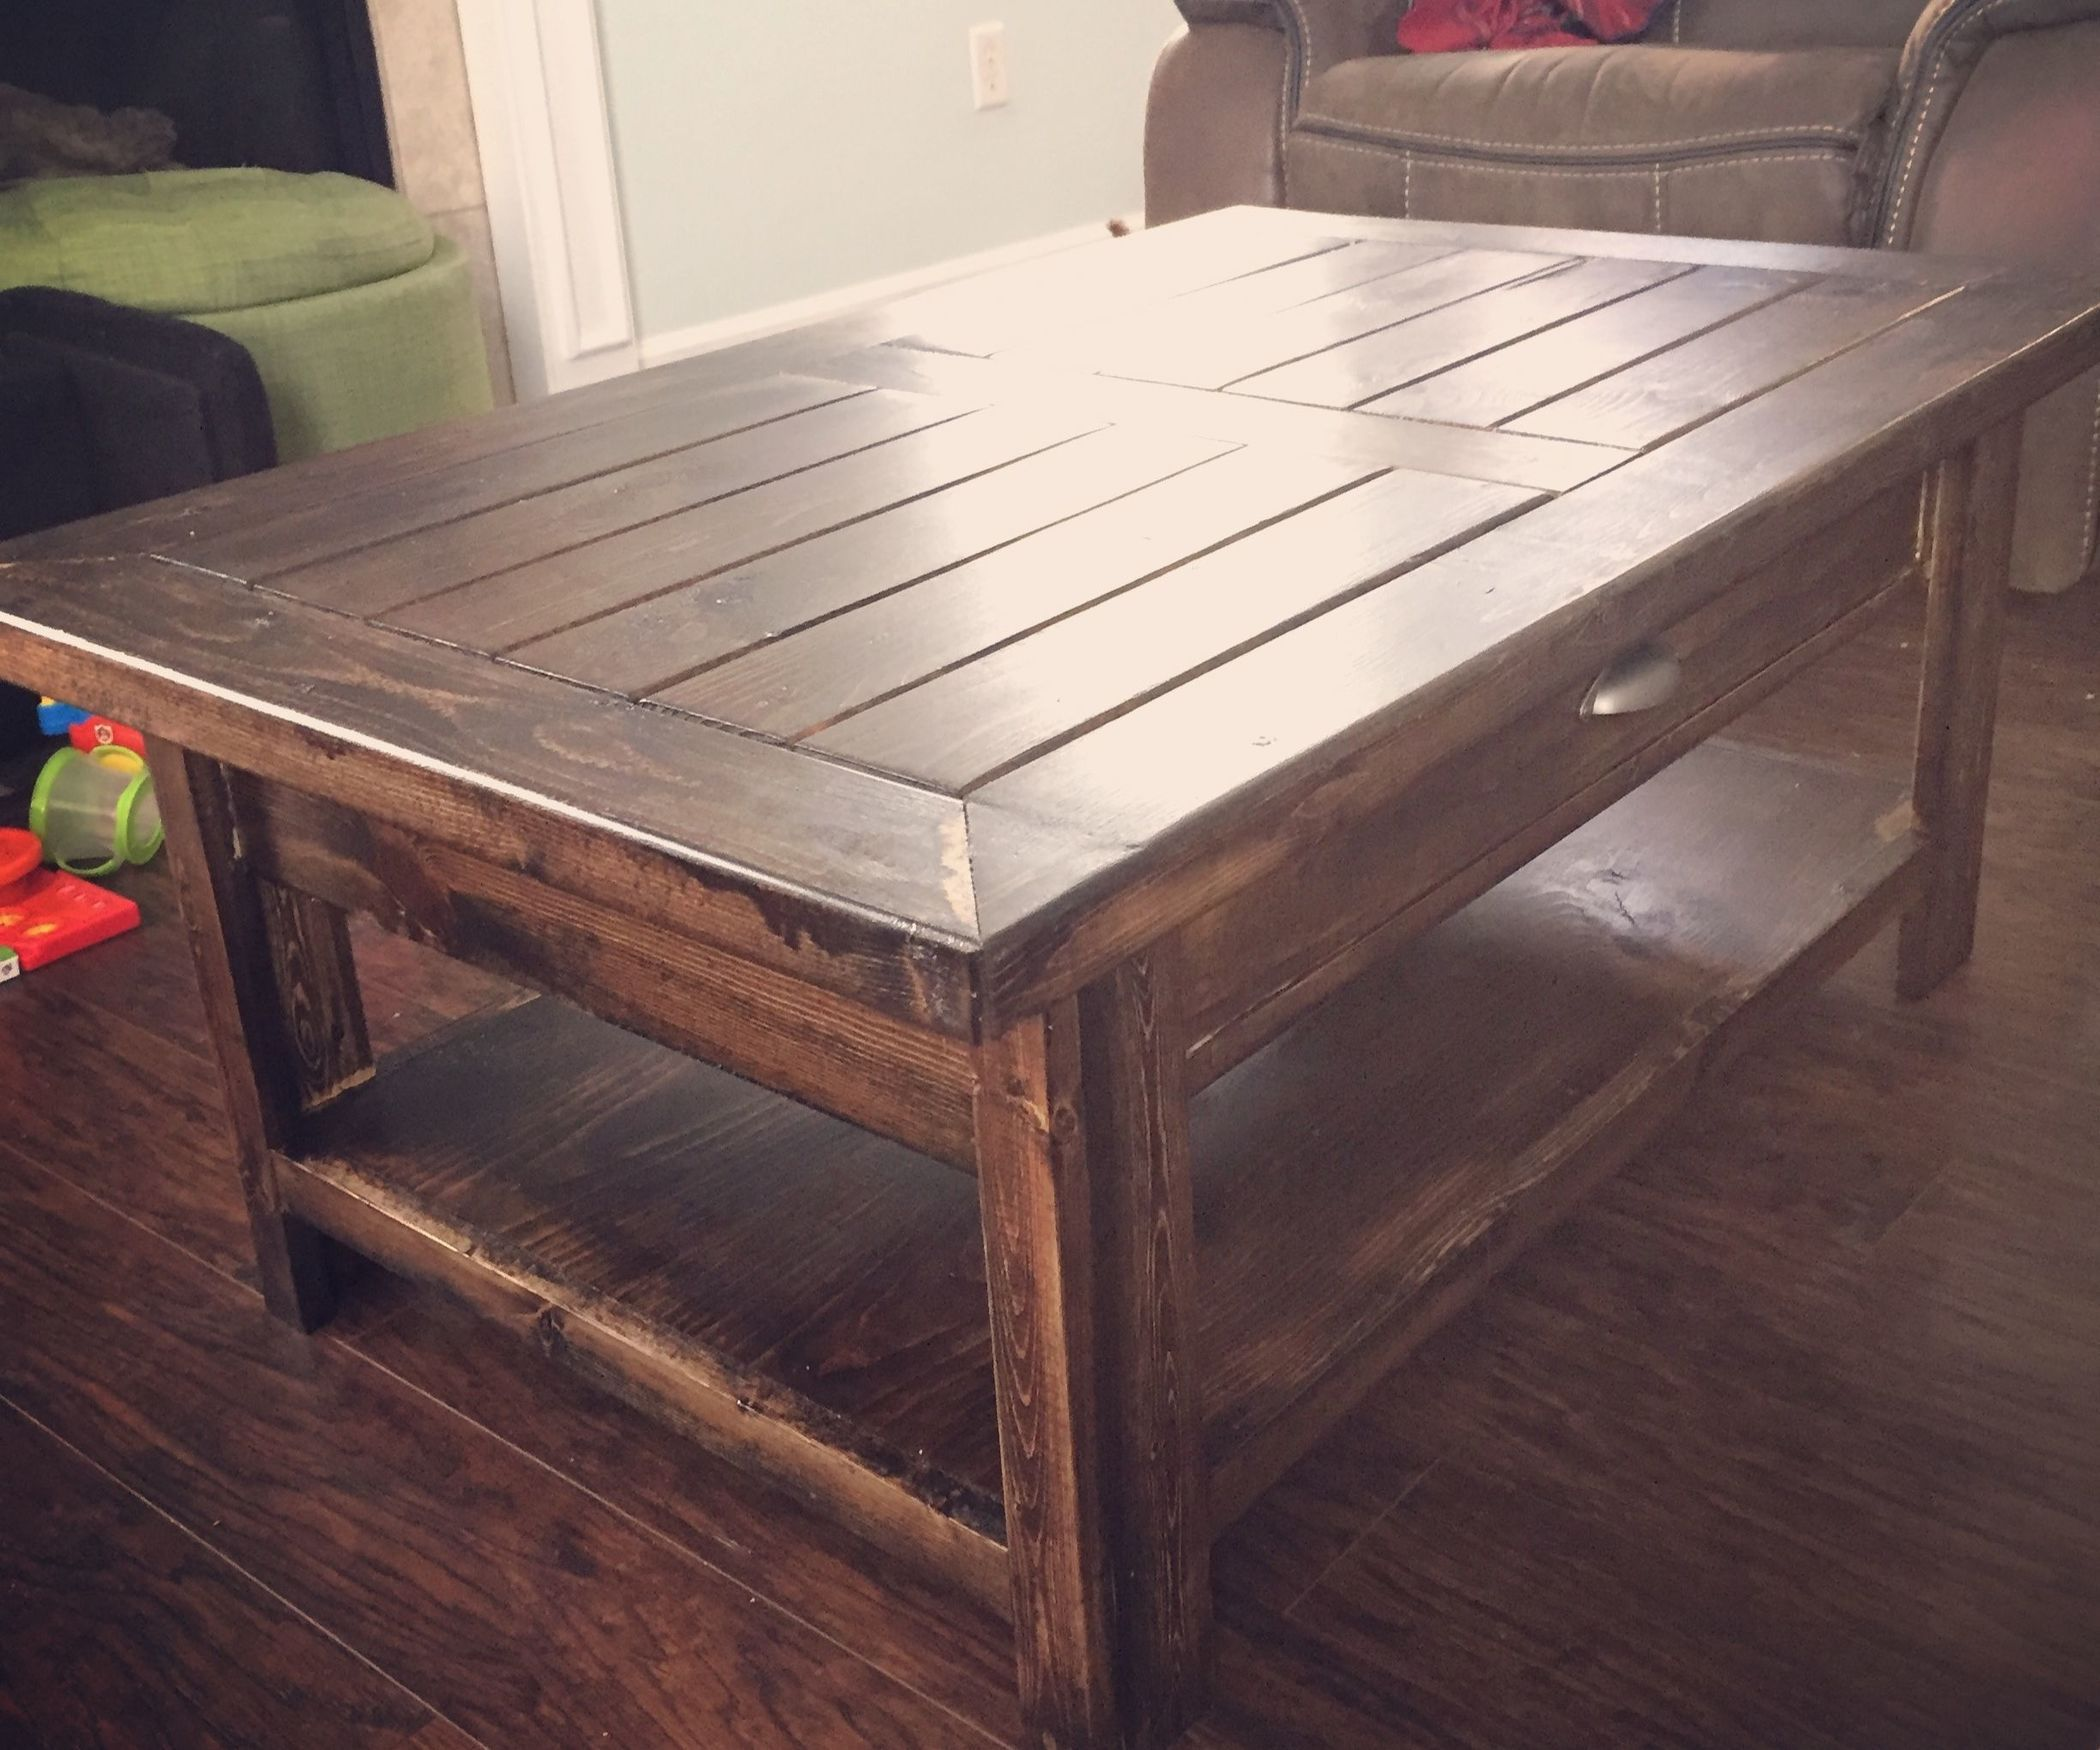 After Looking At Multiple Coffee Tables To Purchase I Set Out Build A Relatively Inexpensive Rustic Table For My Home Invest Roughly 10 Hours Of